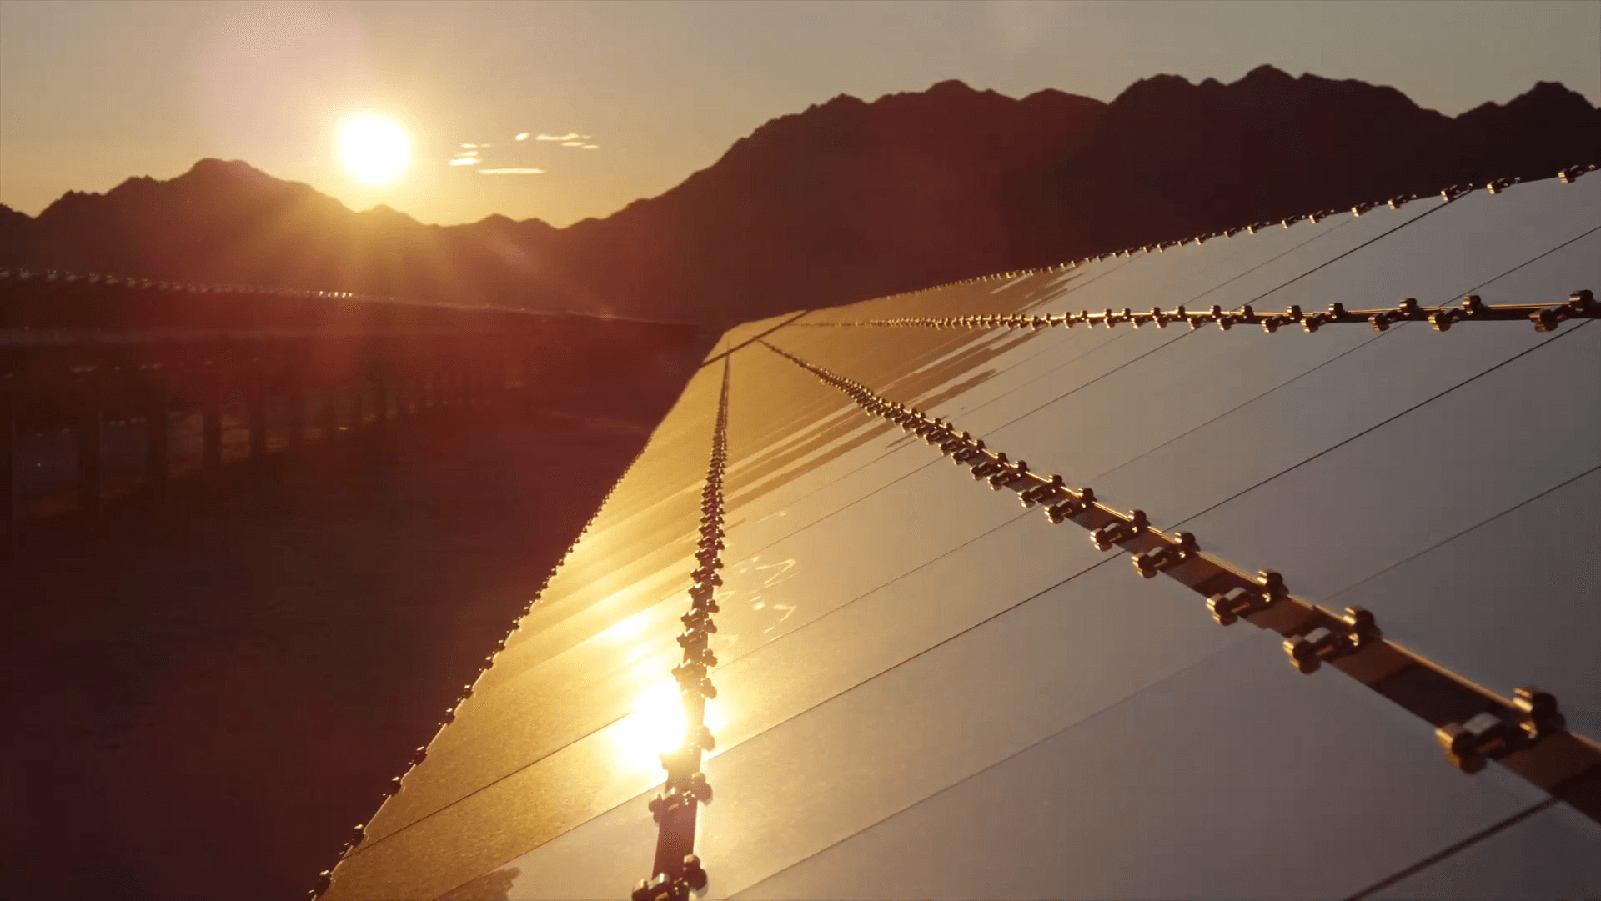 Paloma Solar Plant with a mountainscape and setting sun.